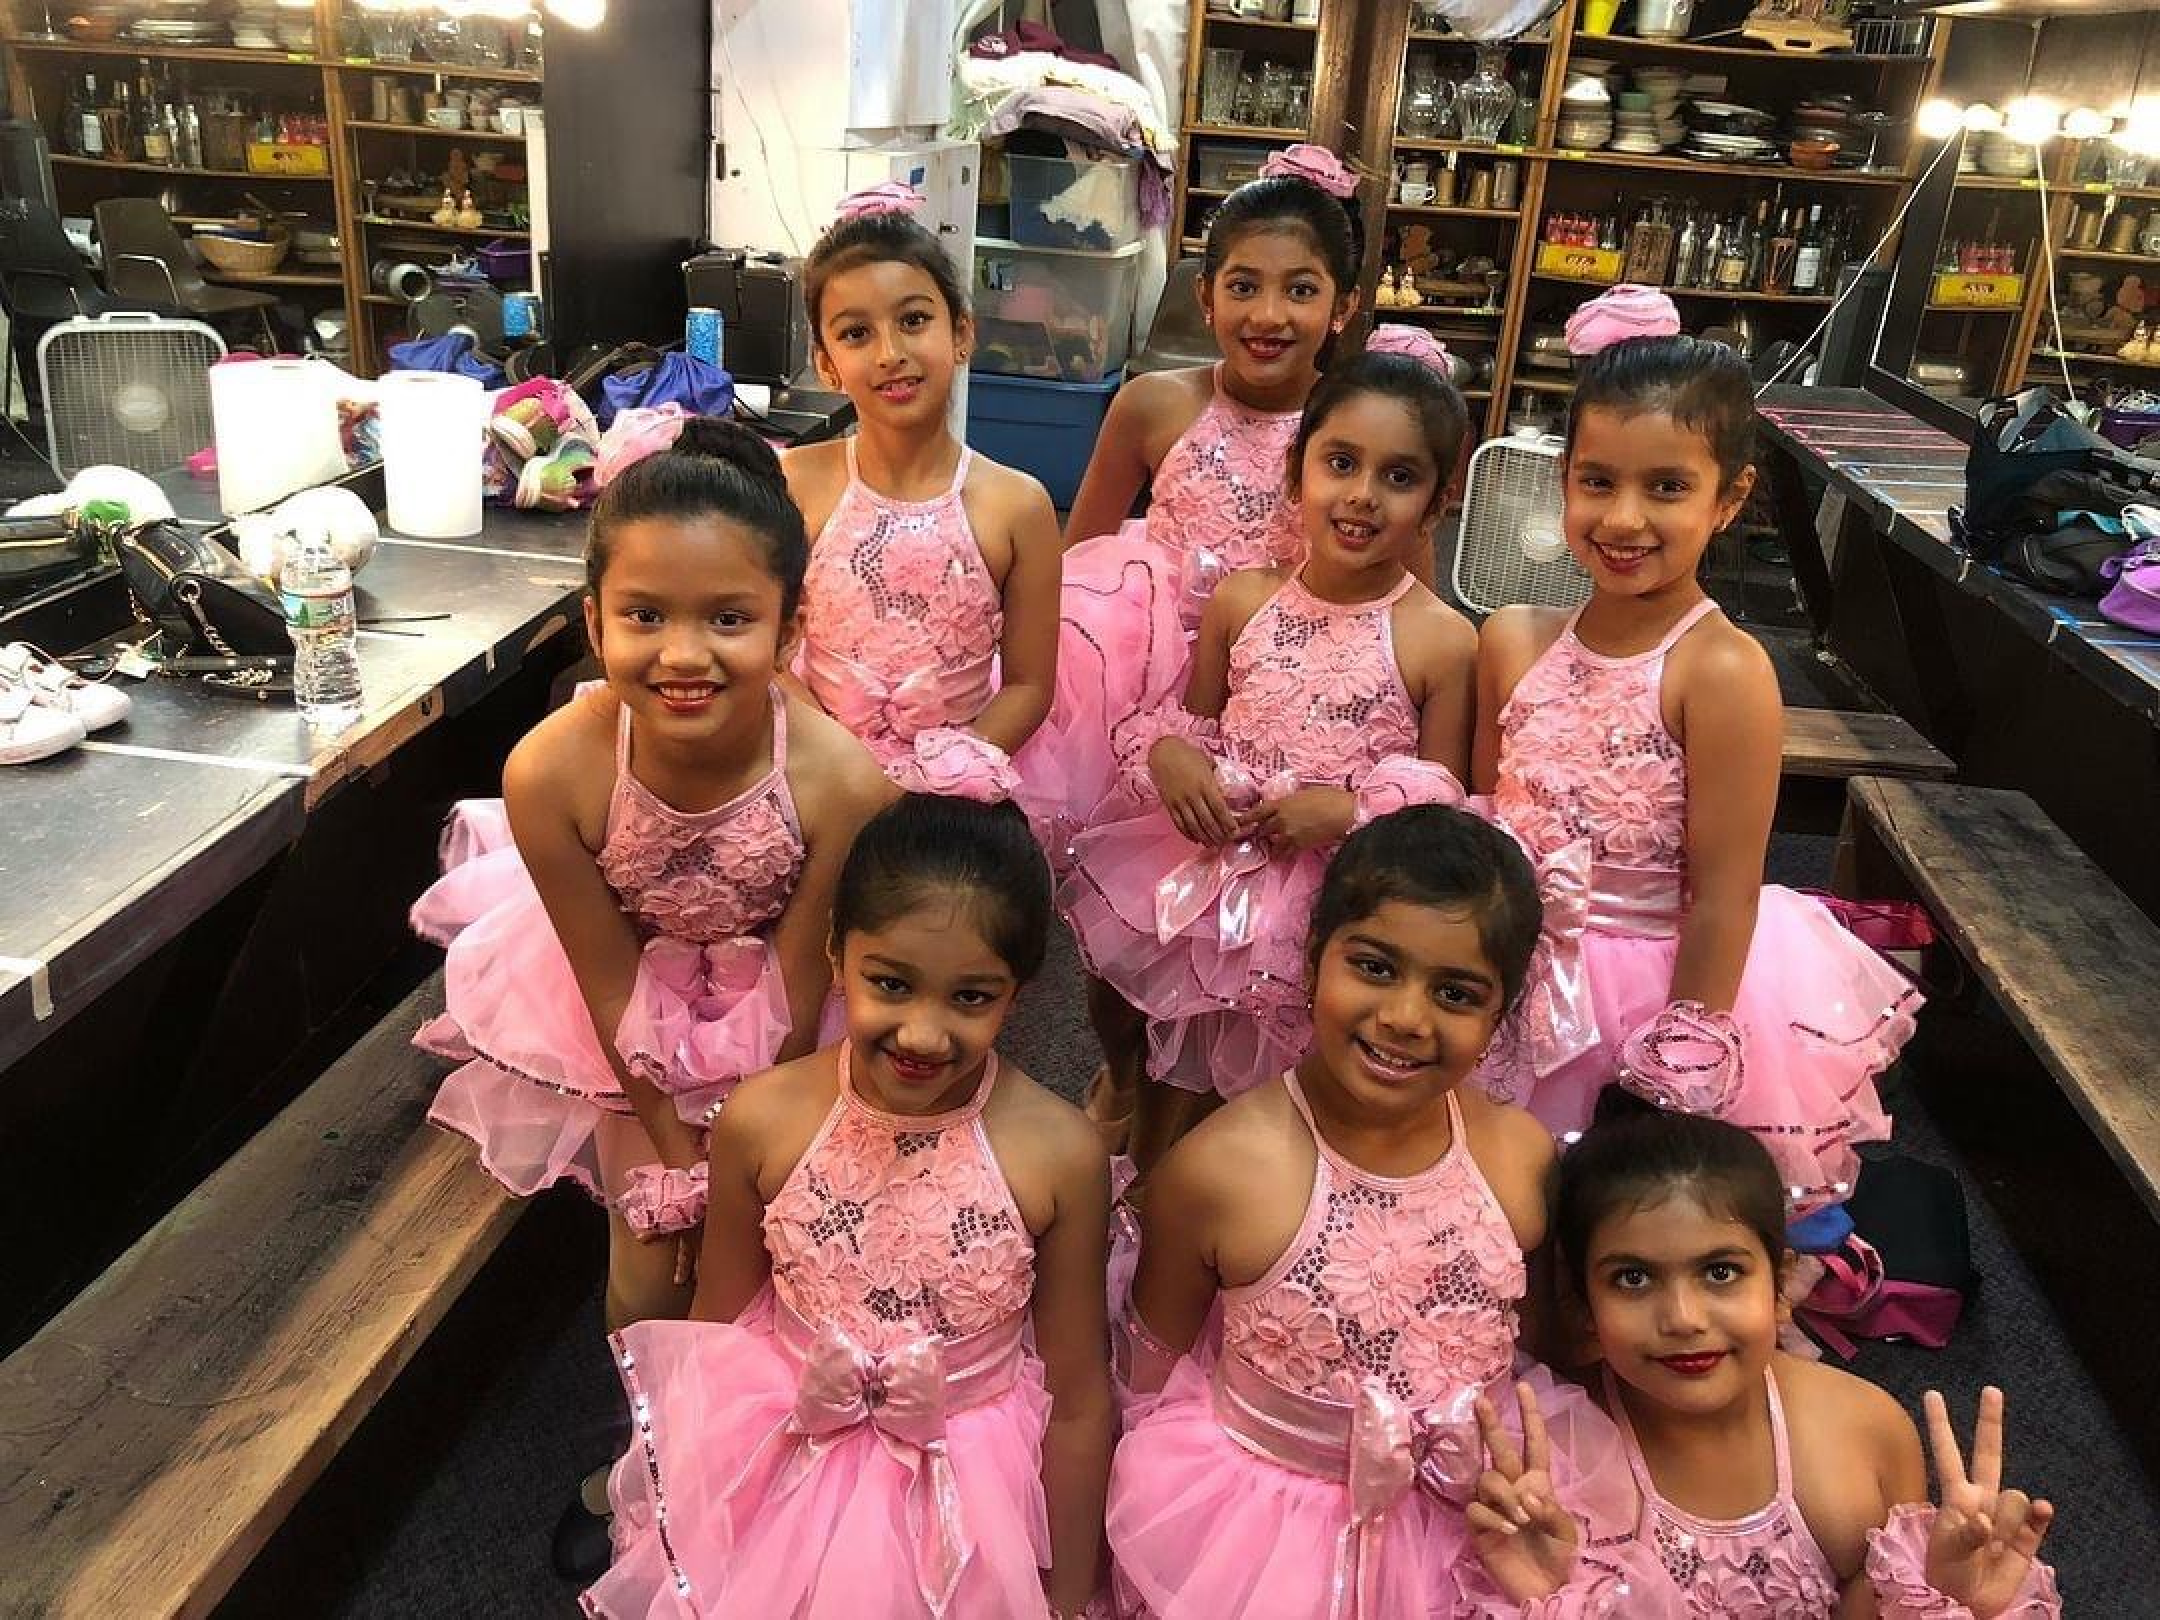 tap dance classes for kids and adults near me in edison nj